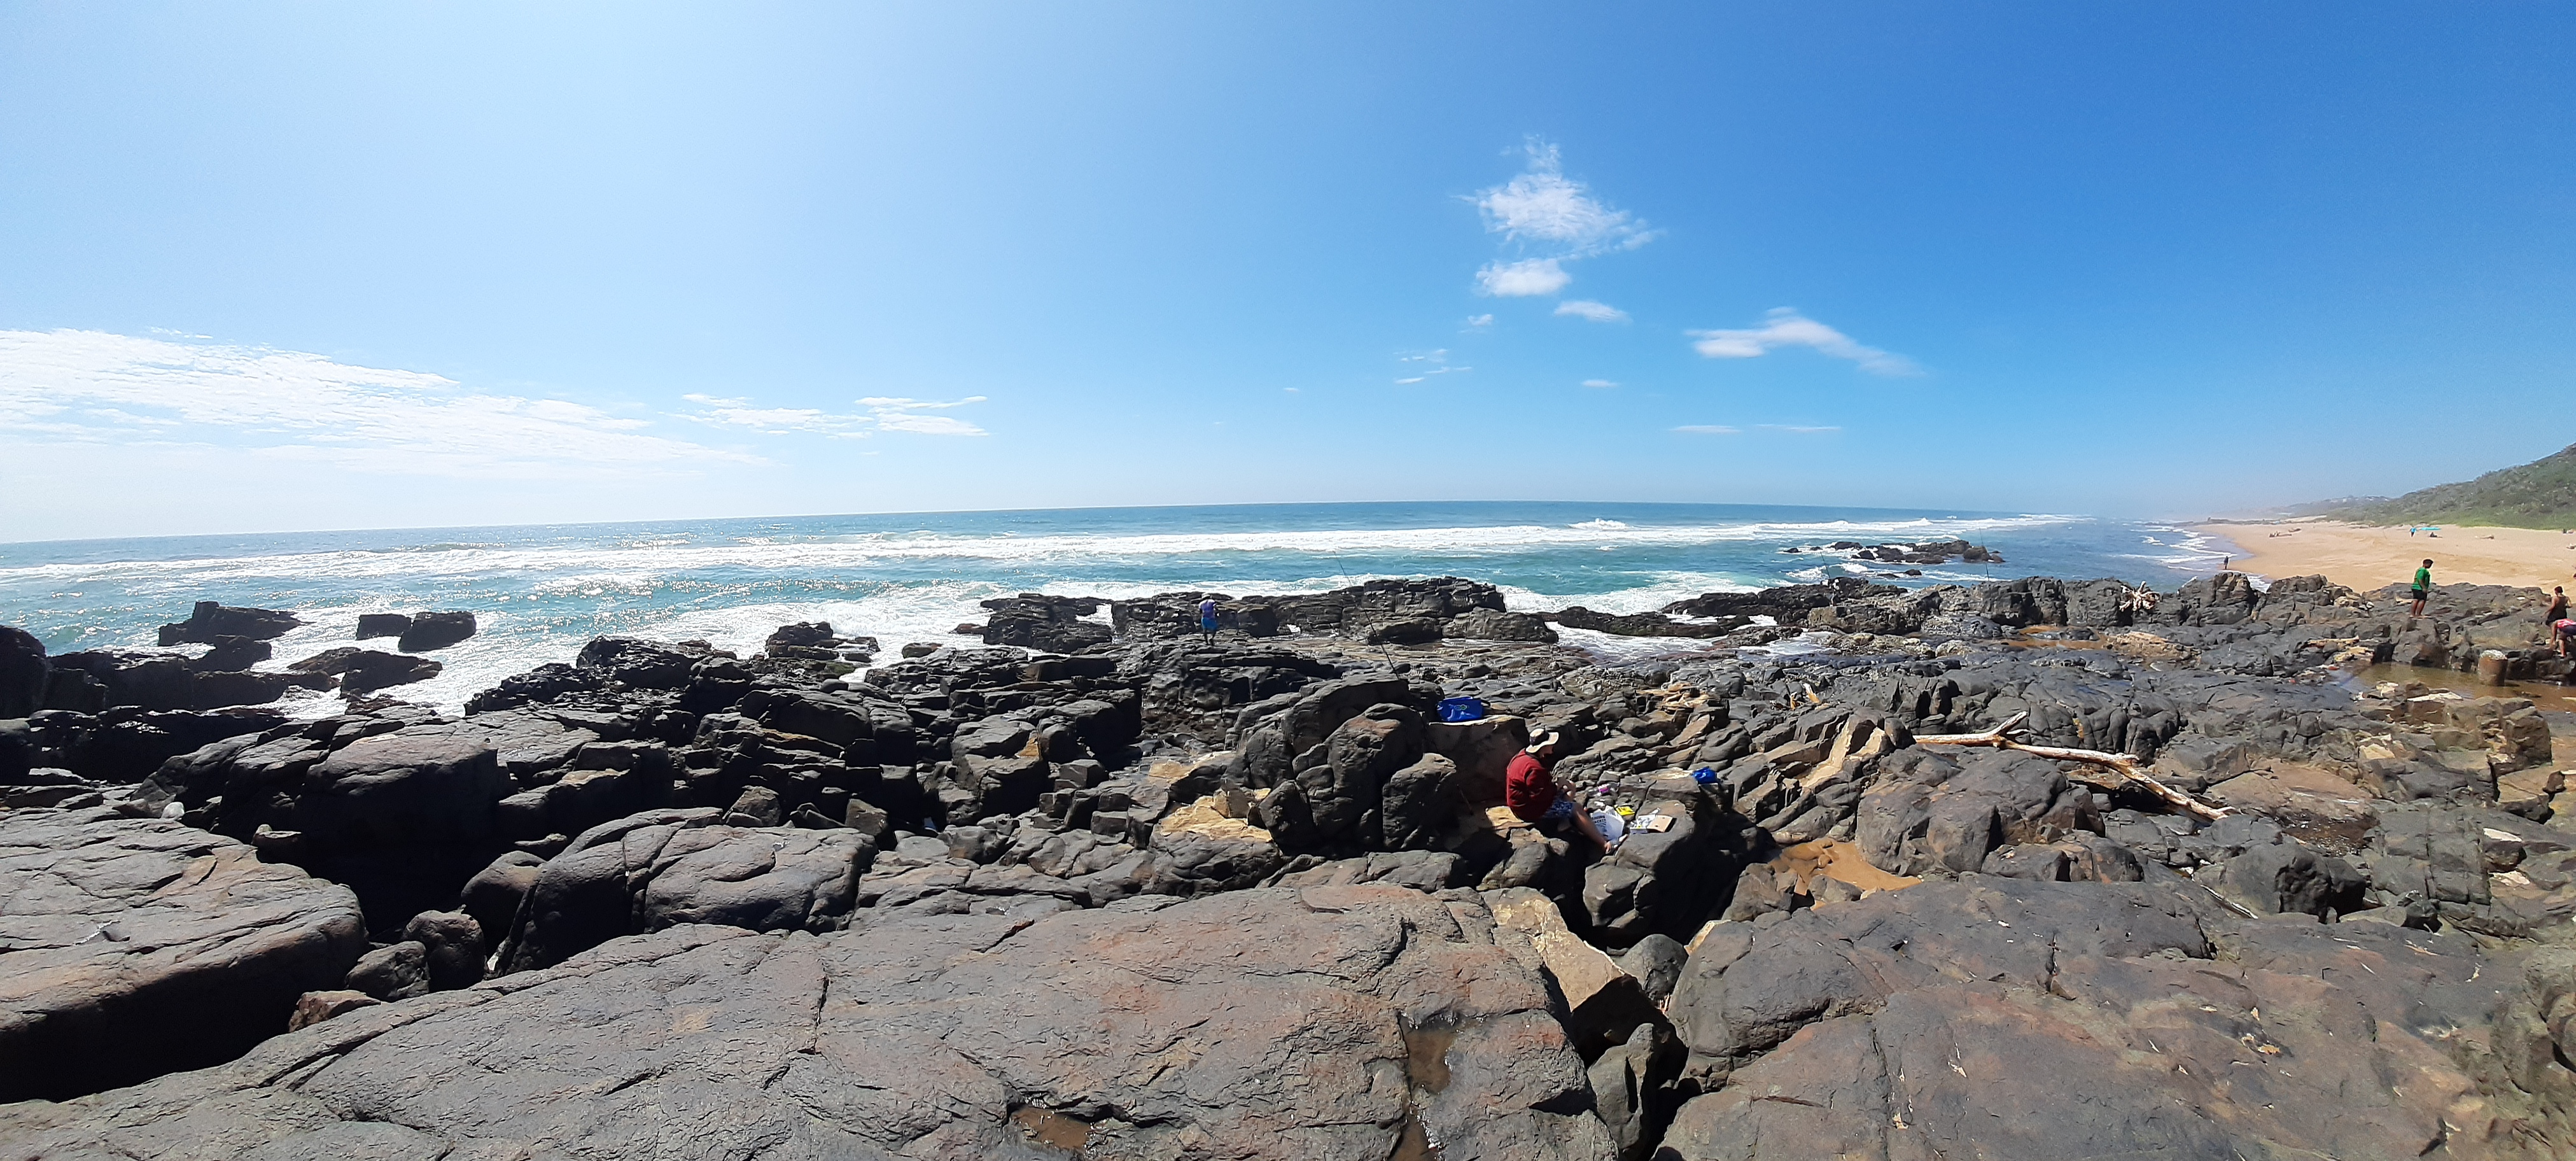 Doonside beach and rocks - Tom n Ryan